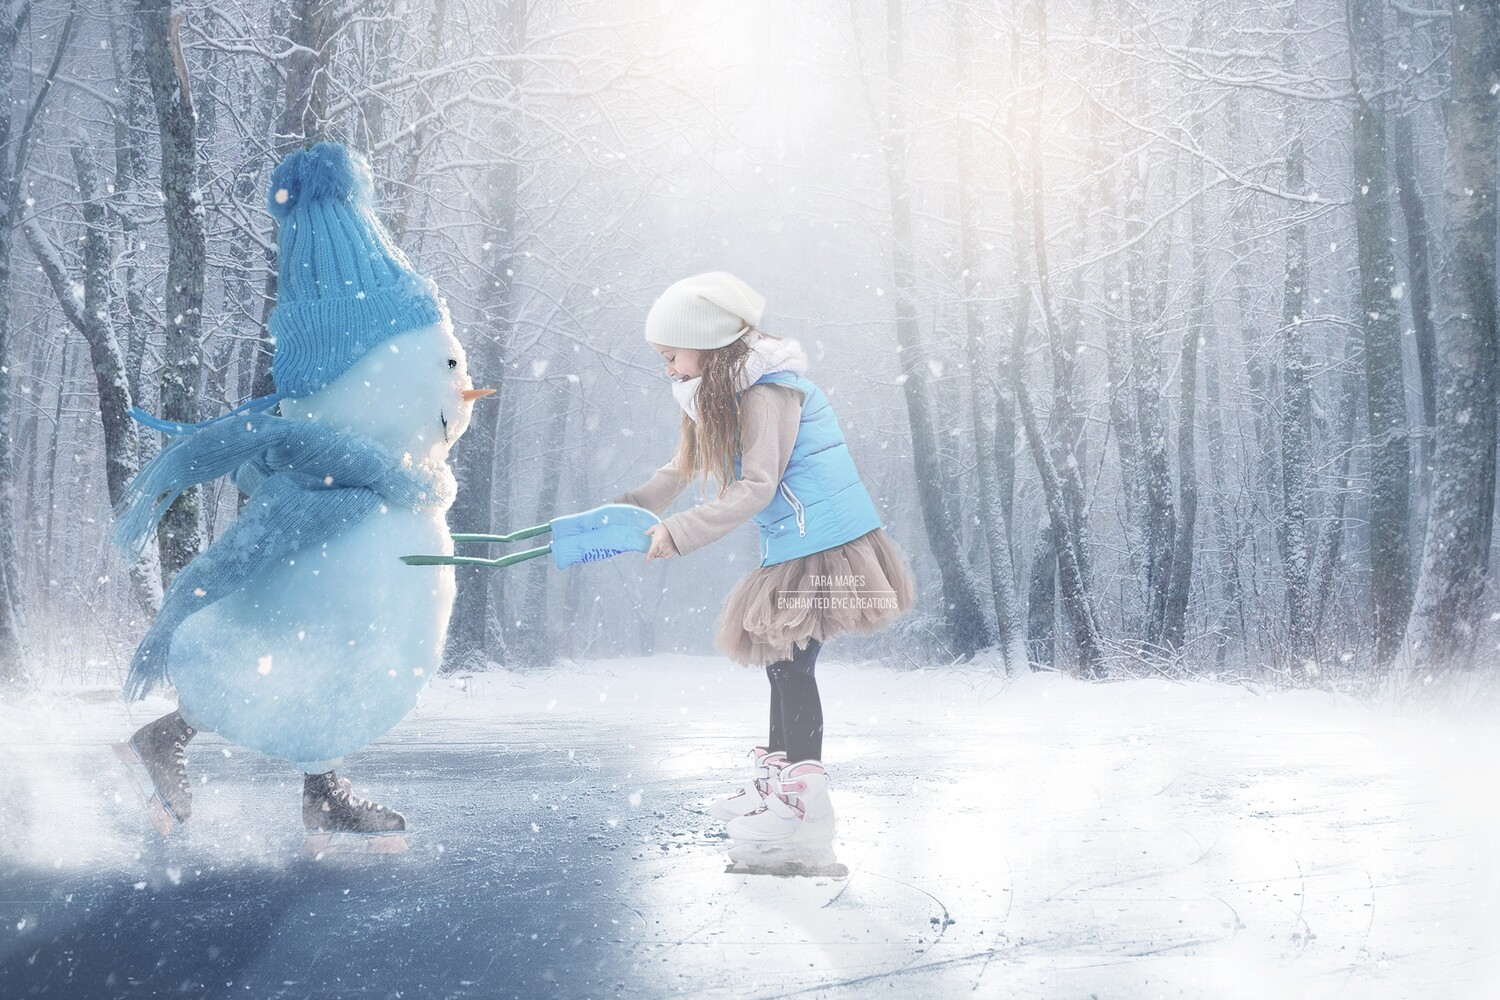 Snowman Iceskating -Snowman Ice Skating -Winter Snowy Scene- Separate Snow Overlay - Christmas Digital Background Backdrop